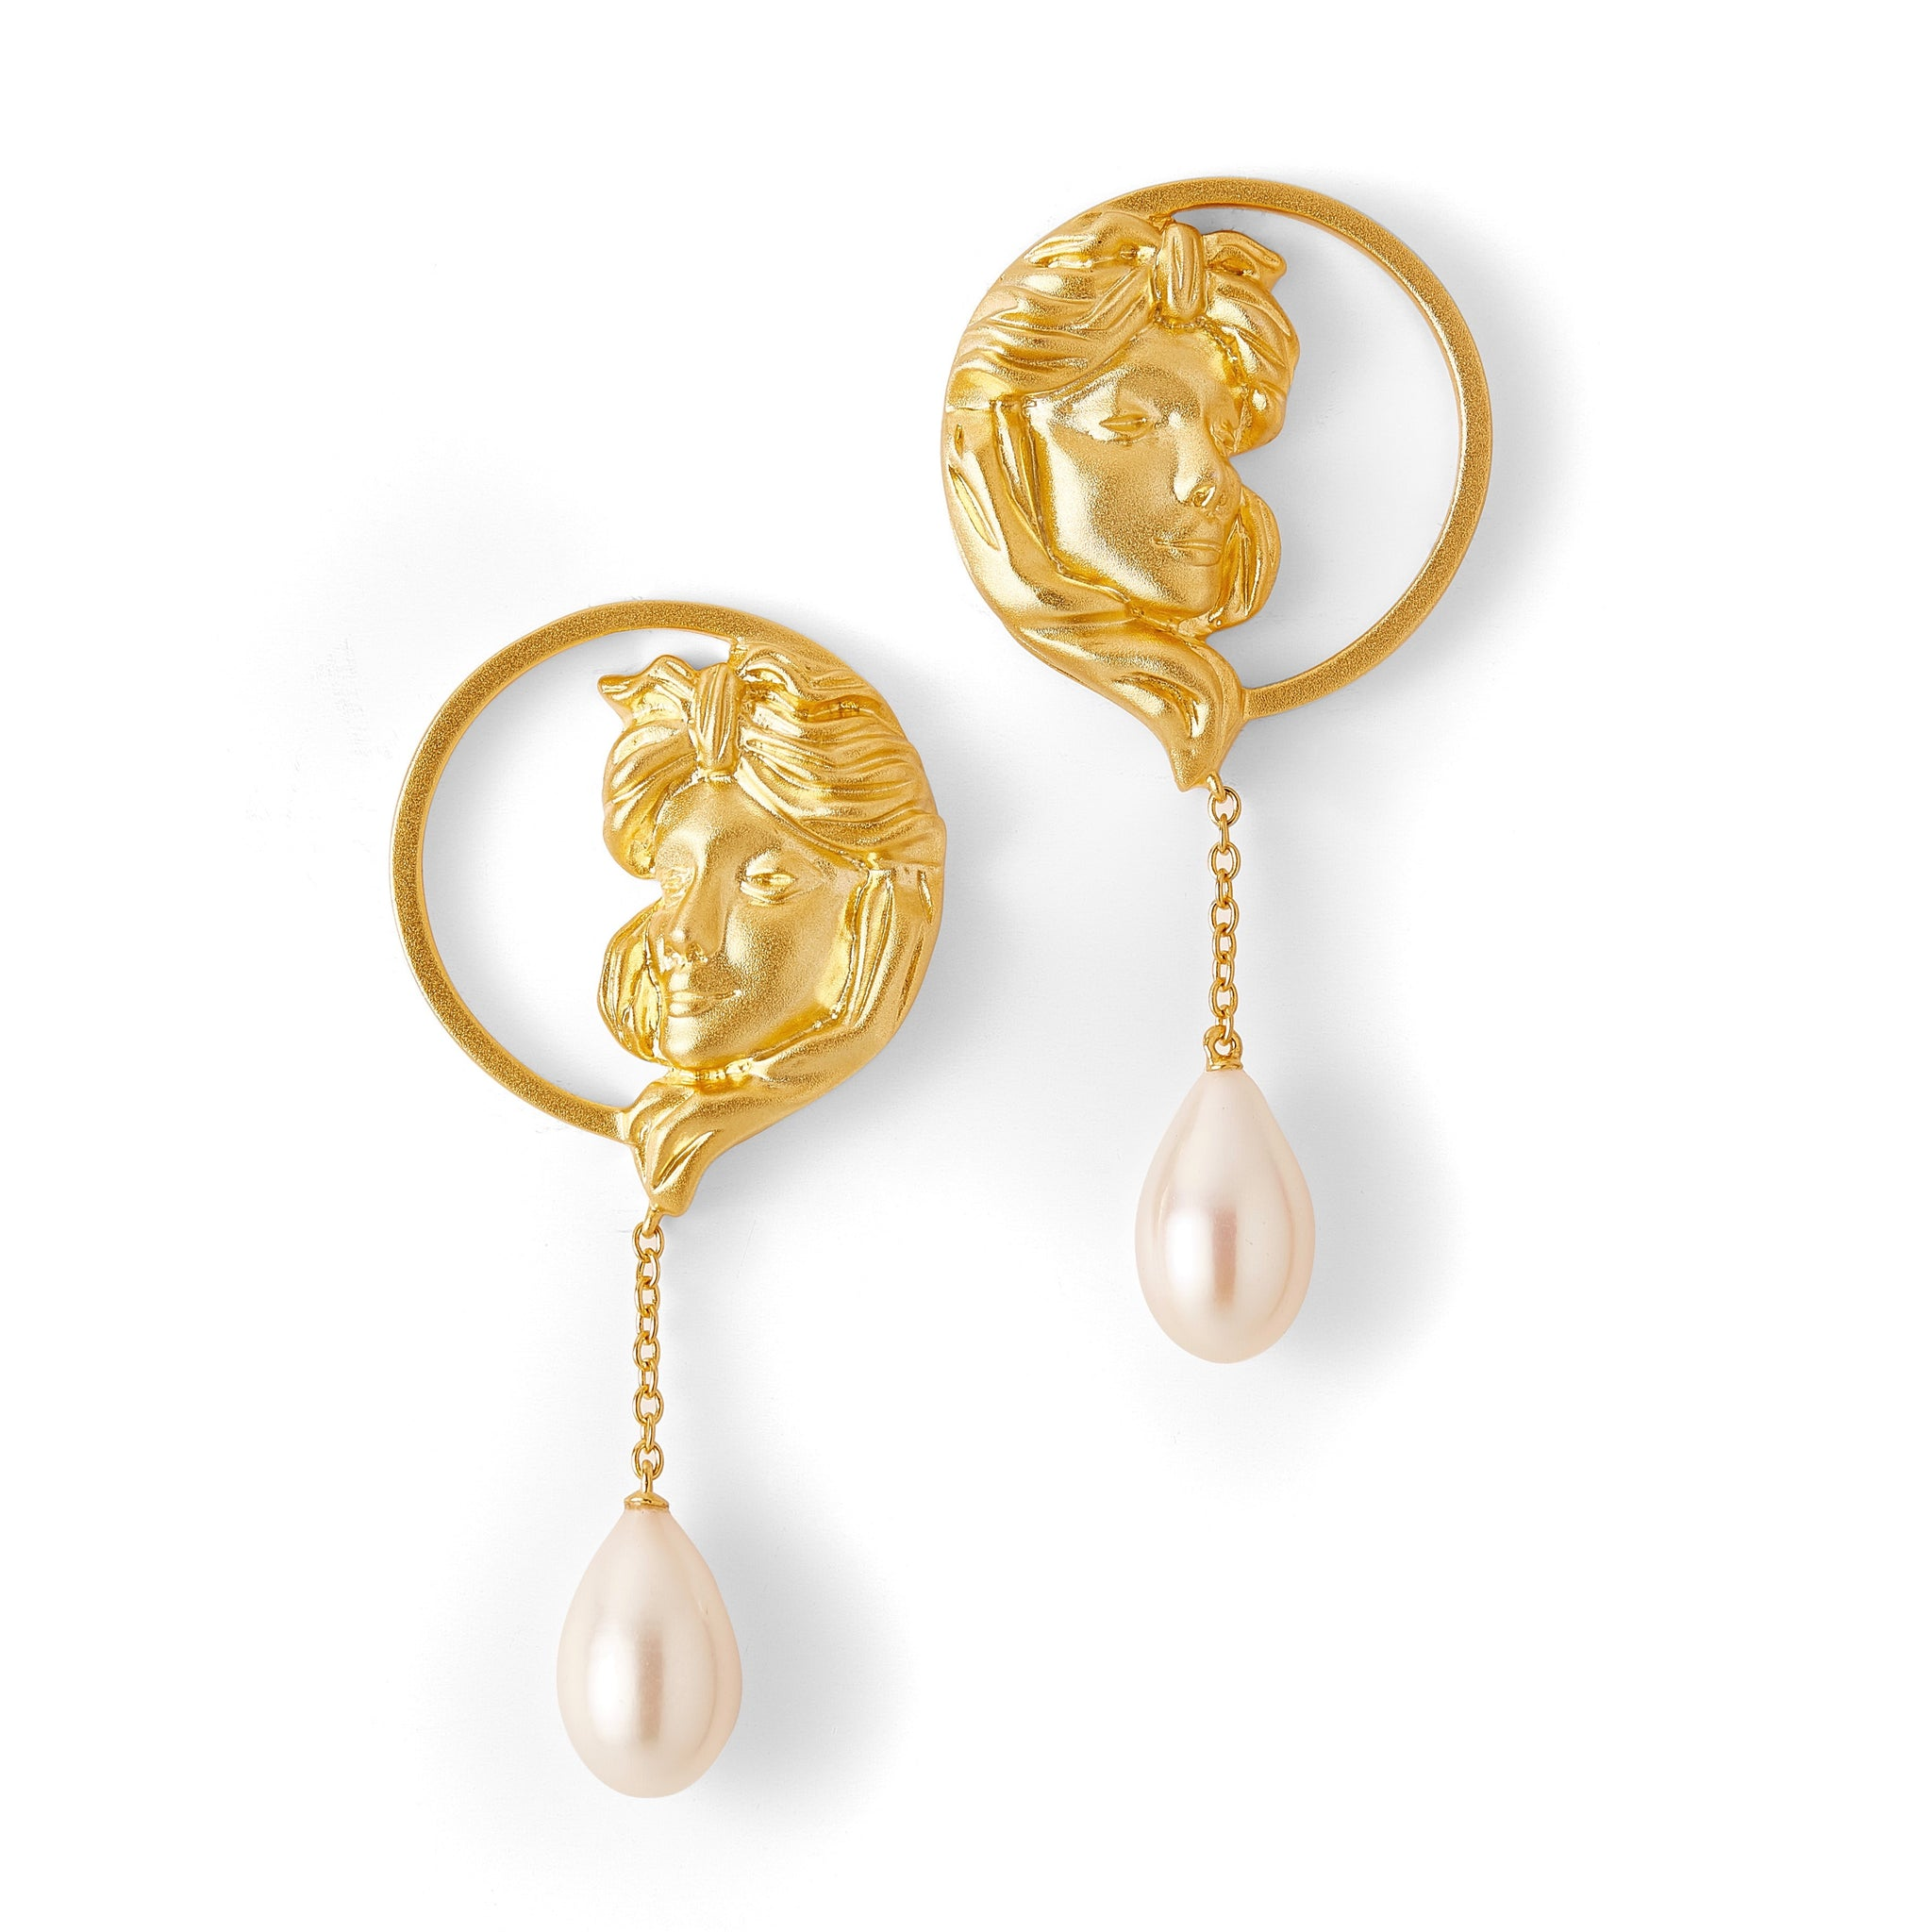 Madame Tallien Earrings